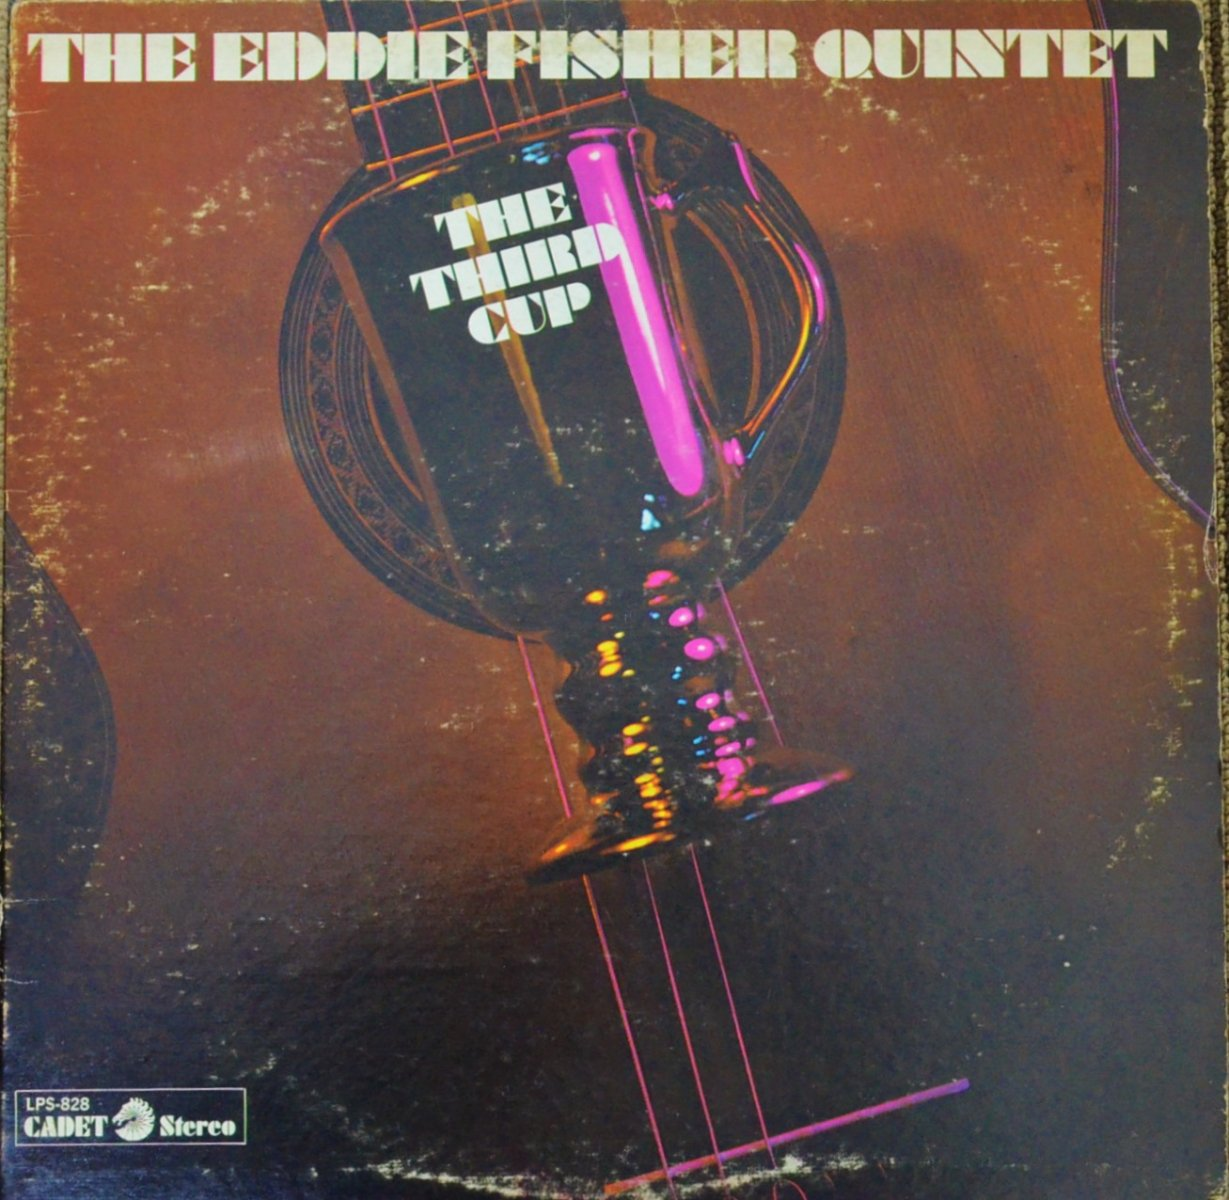 THE EDDIE FISHER QUINTET / THE THIRD CUP (LP)